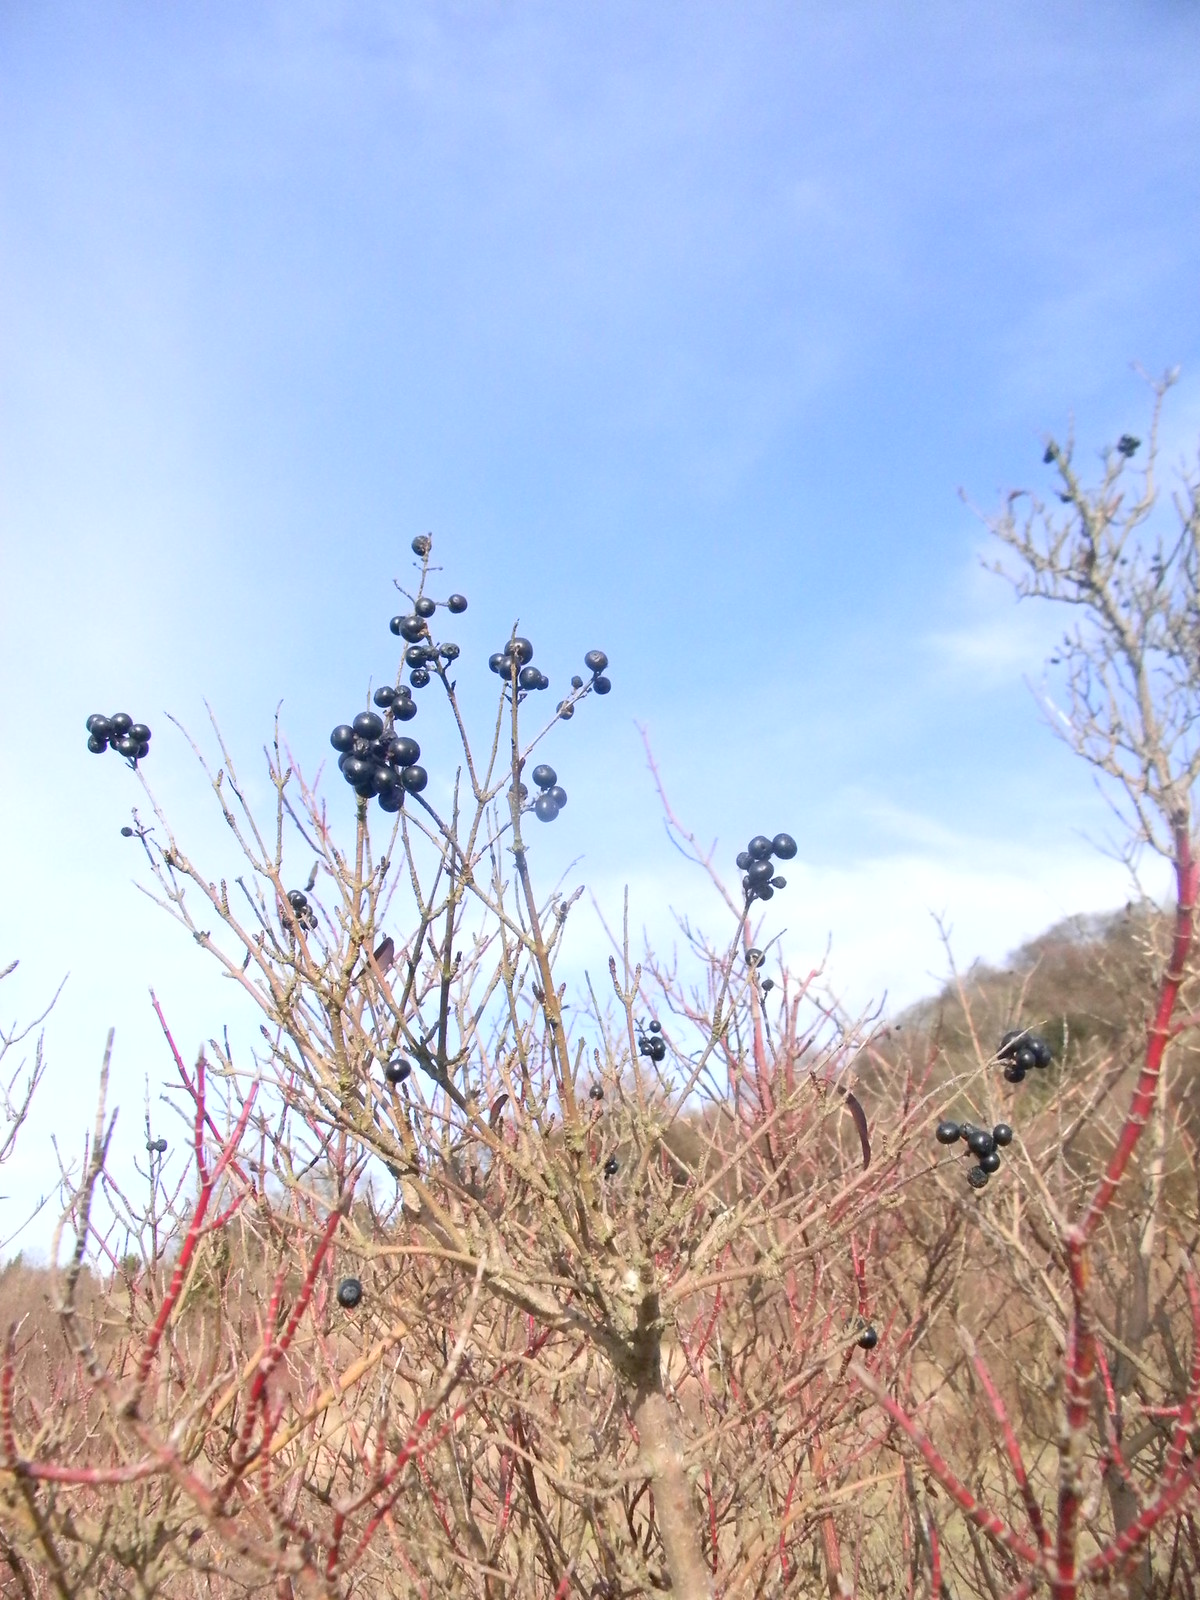 Dogwood berries (not edible) Princes Risborough to Wendover